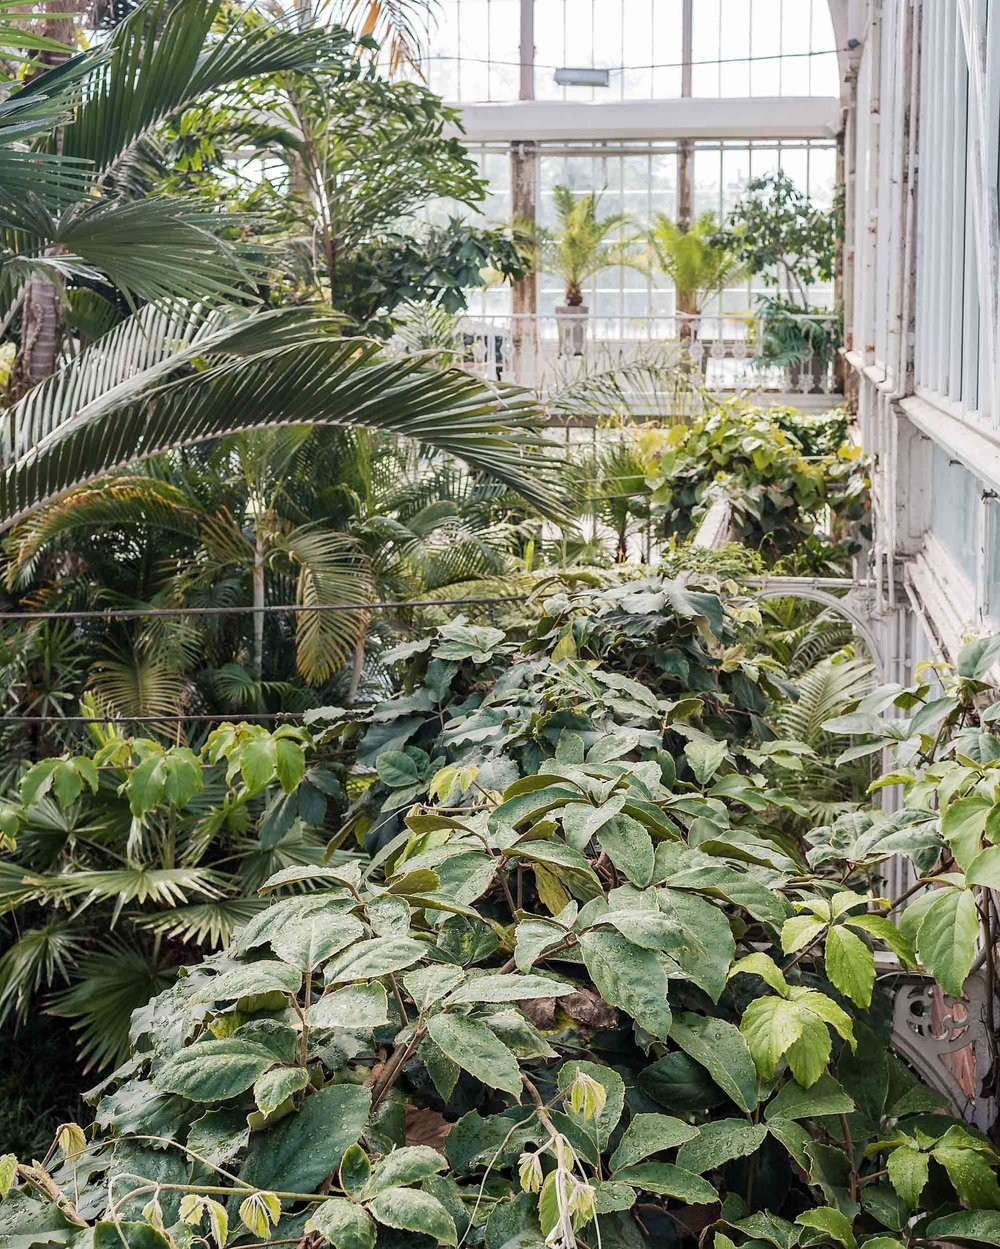 A greenhouse in Gothenburg, Sweden